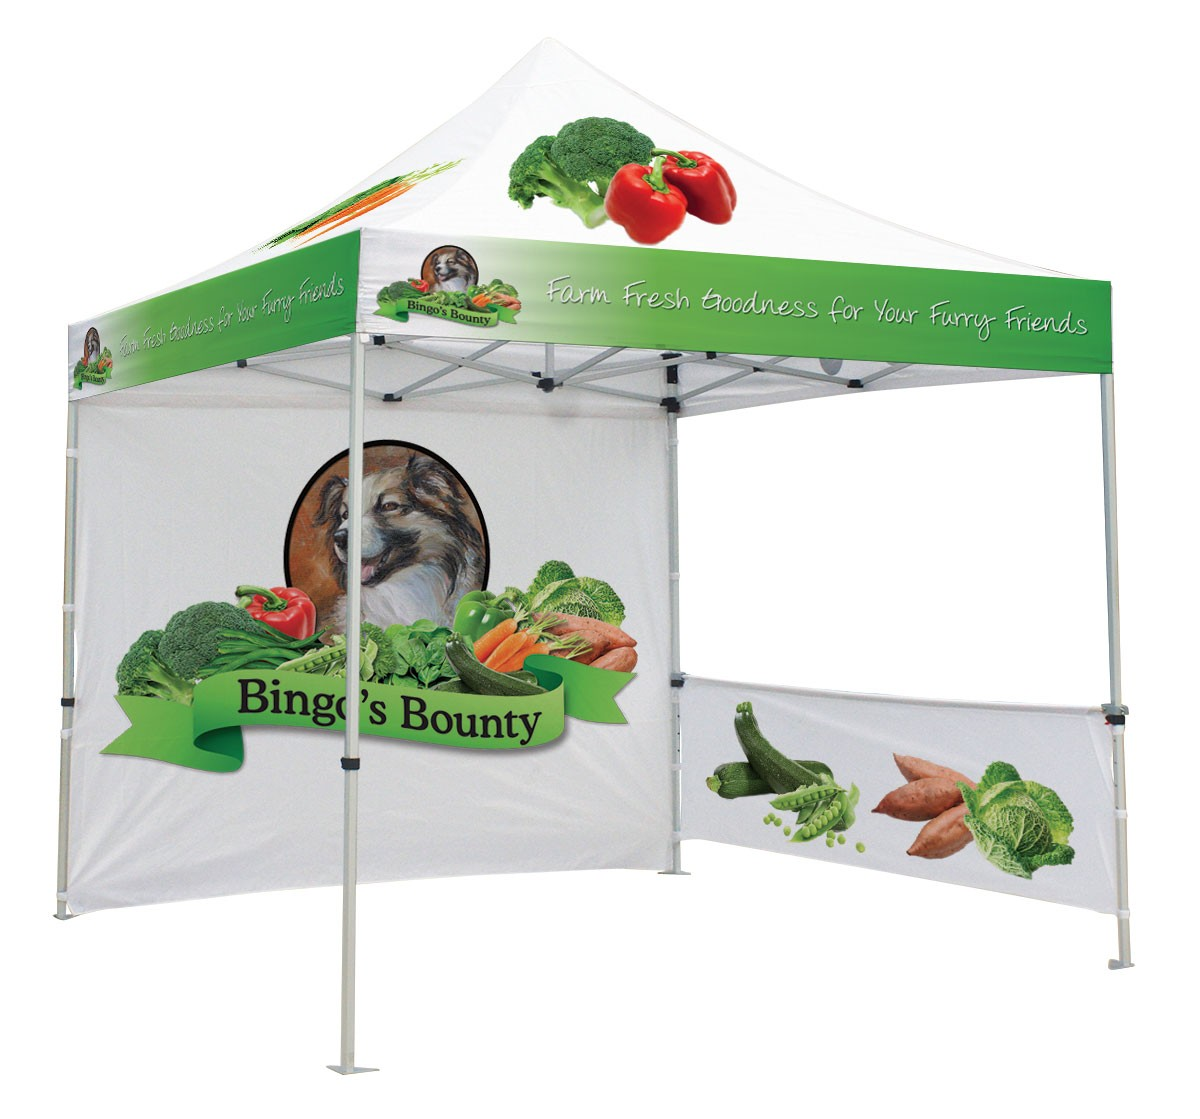 Canopy Tent Kit will full custom printed top and walls ...  sc 1 st  Banner Stand Pros & Canopy Tent Kit | BannerStandPros.com